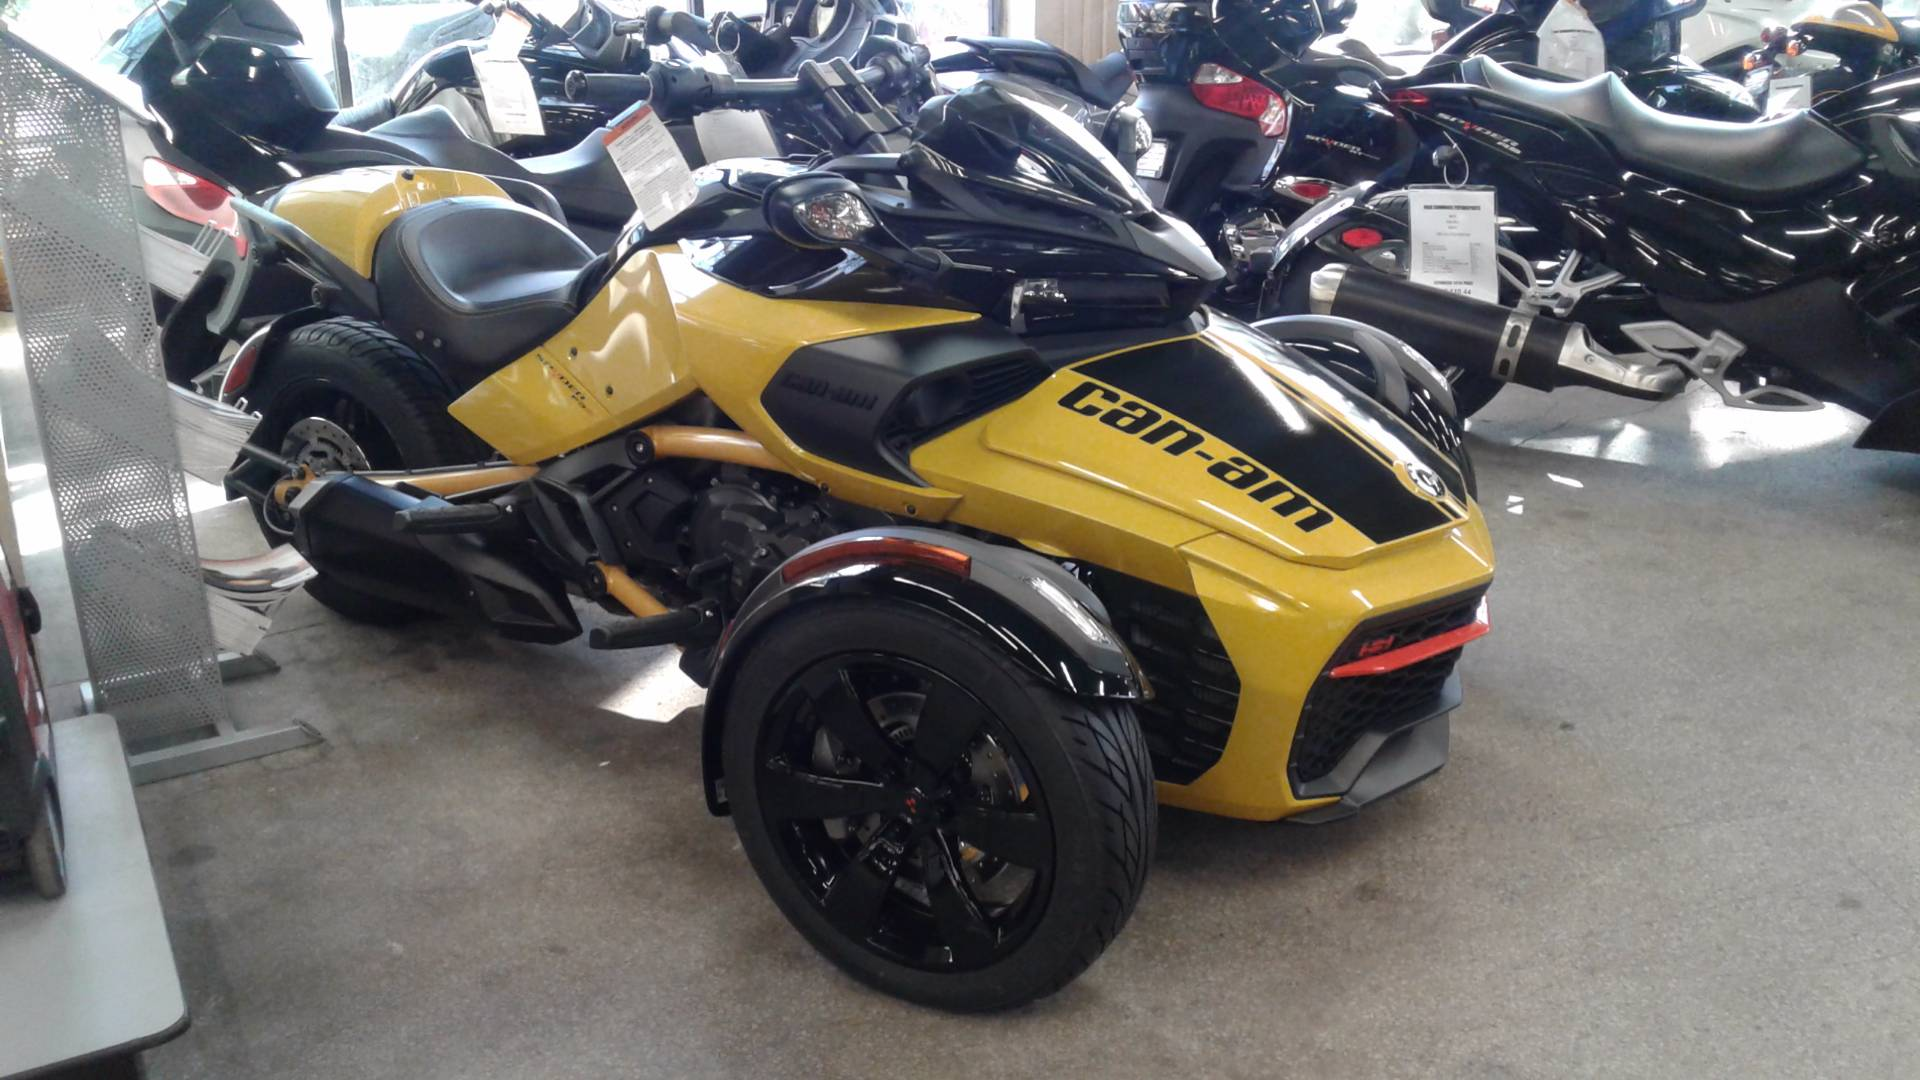 2017 Can-Am Spyder F3-S Daytona 500 SE6 in Bakersfield, California